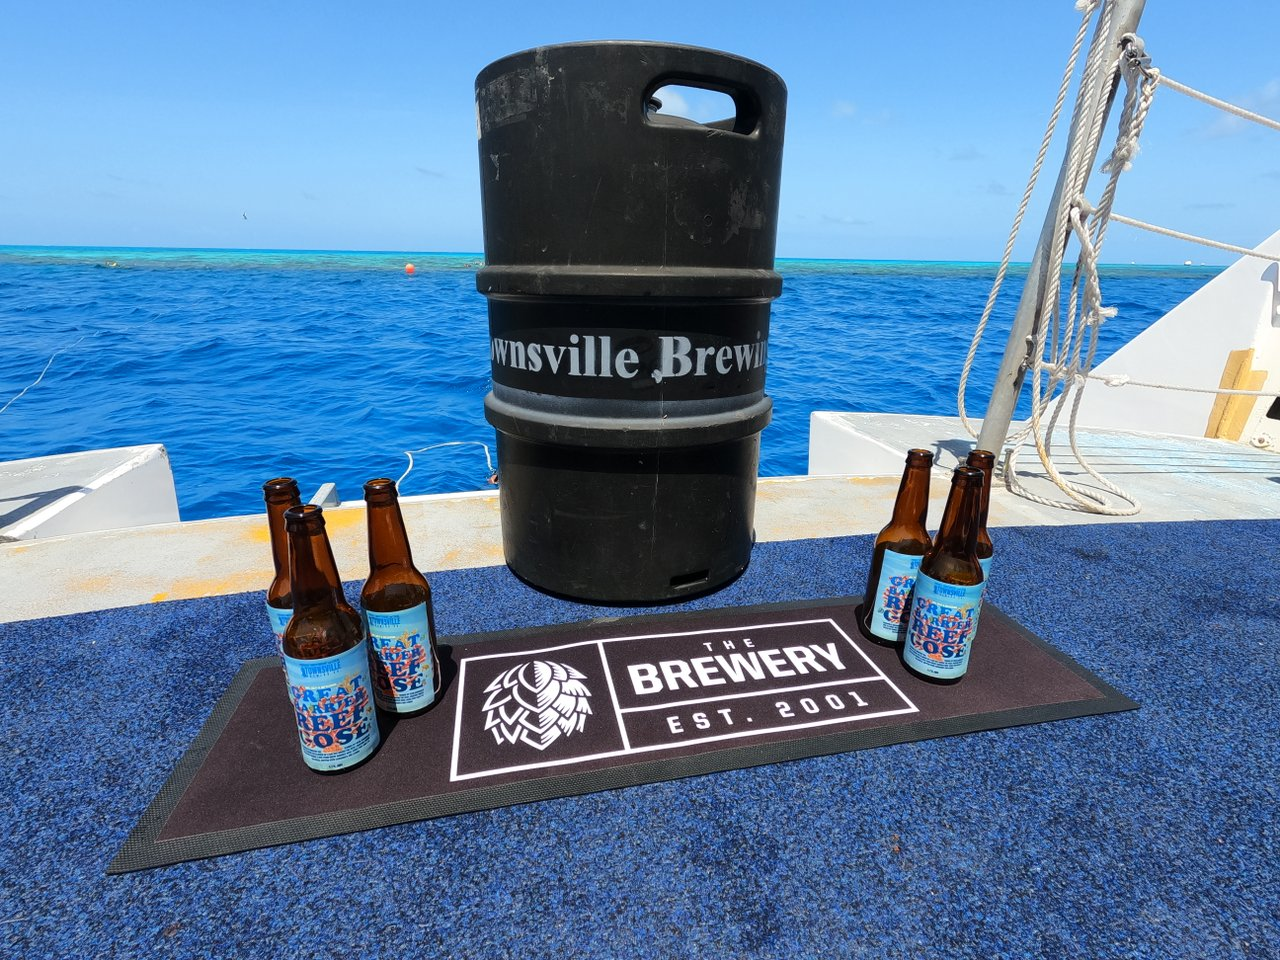 World's first beer brewed with water from the Great Barrier Reef being made in Townsville